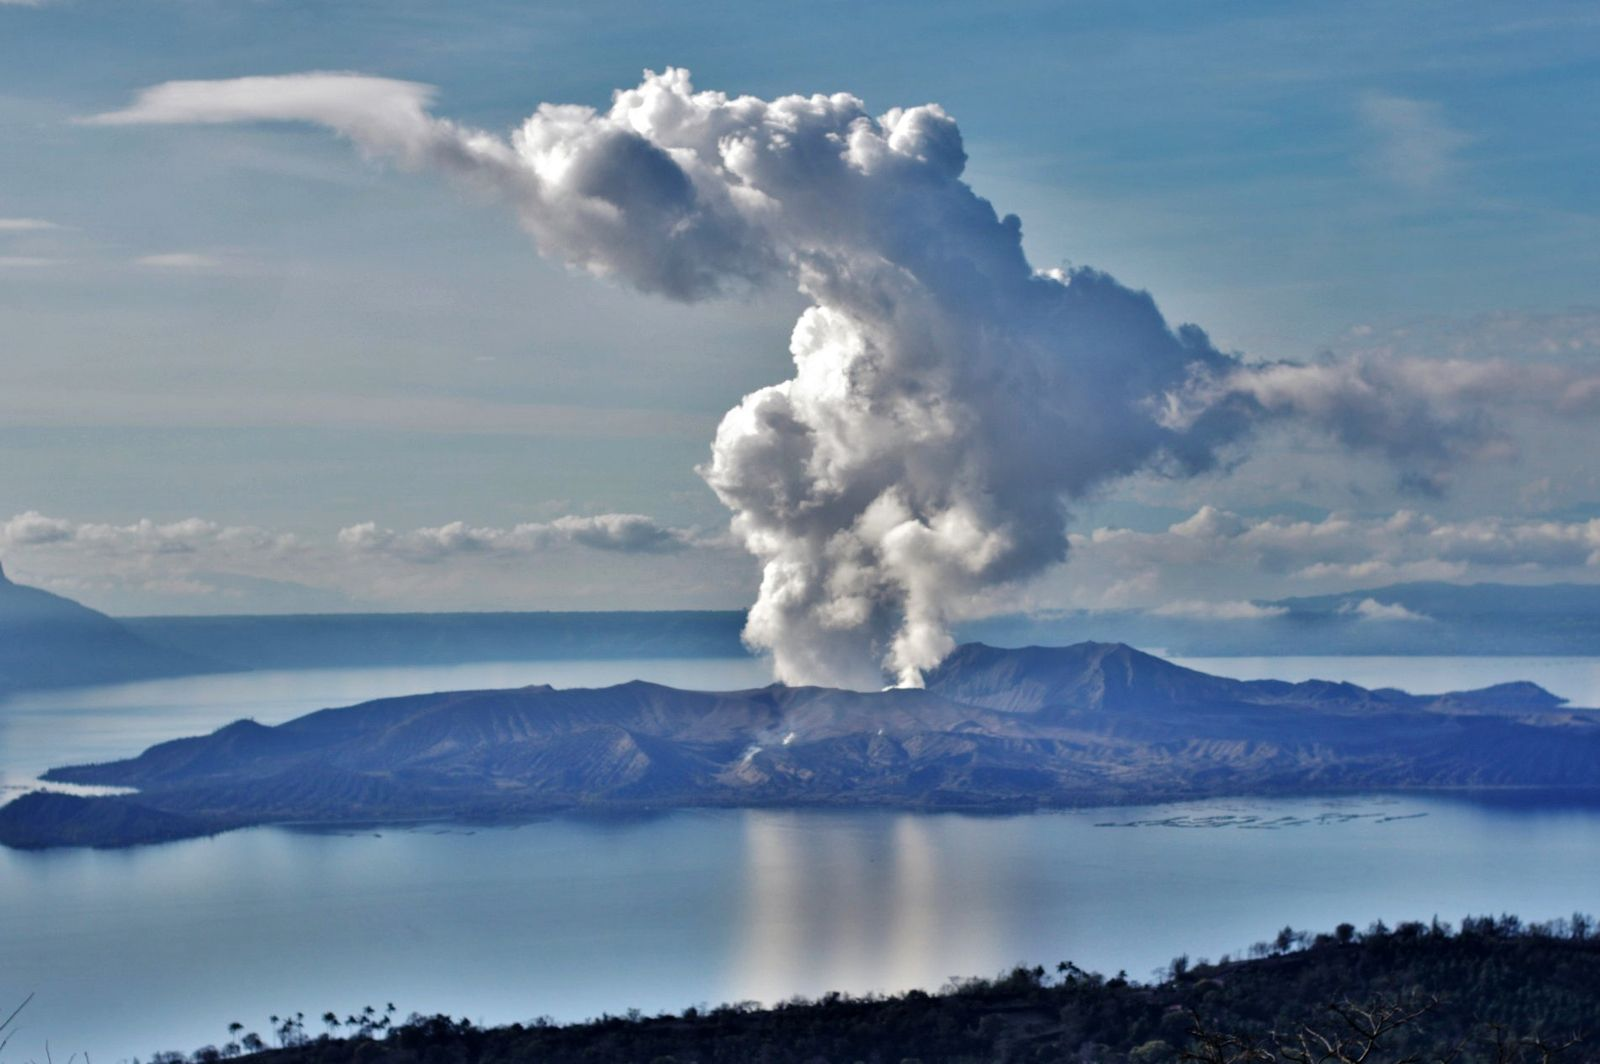 Taal, seen from Picnic Grove Theme Park / Tagaytay City - emission of a gas and steam plume on 26.01.2020 in the morning - photo Richard Langford